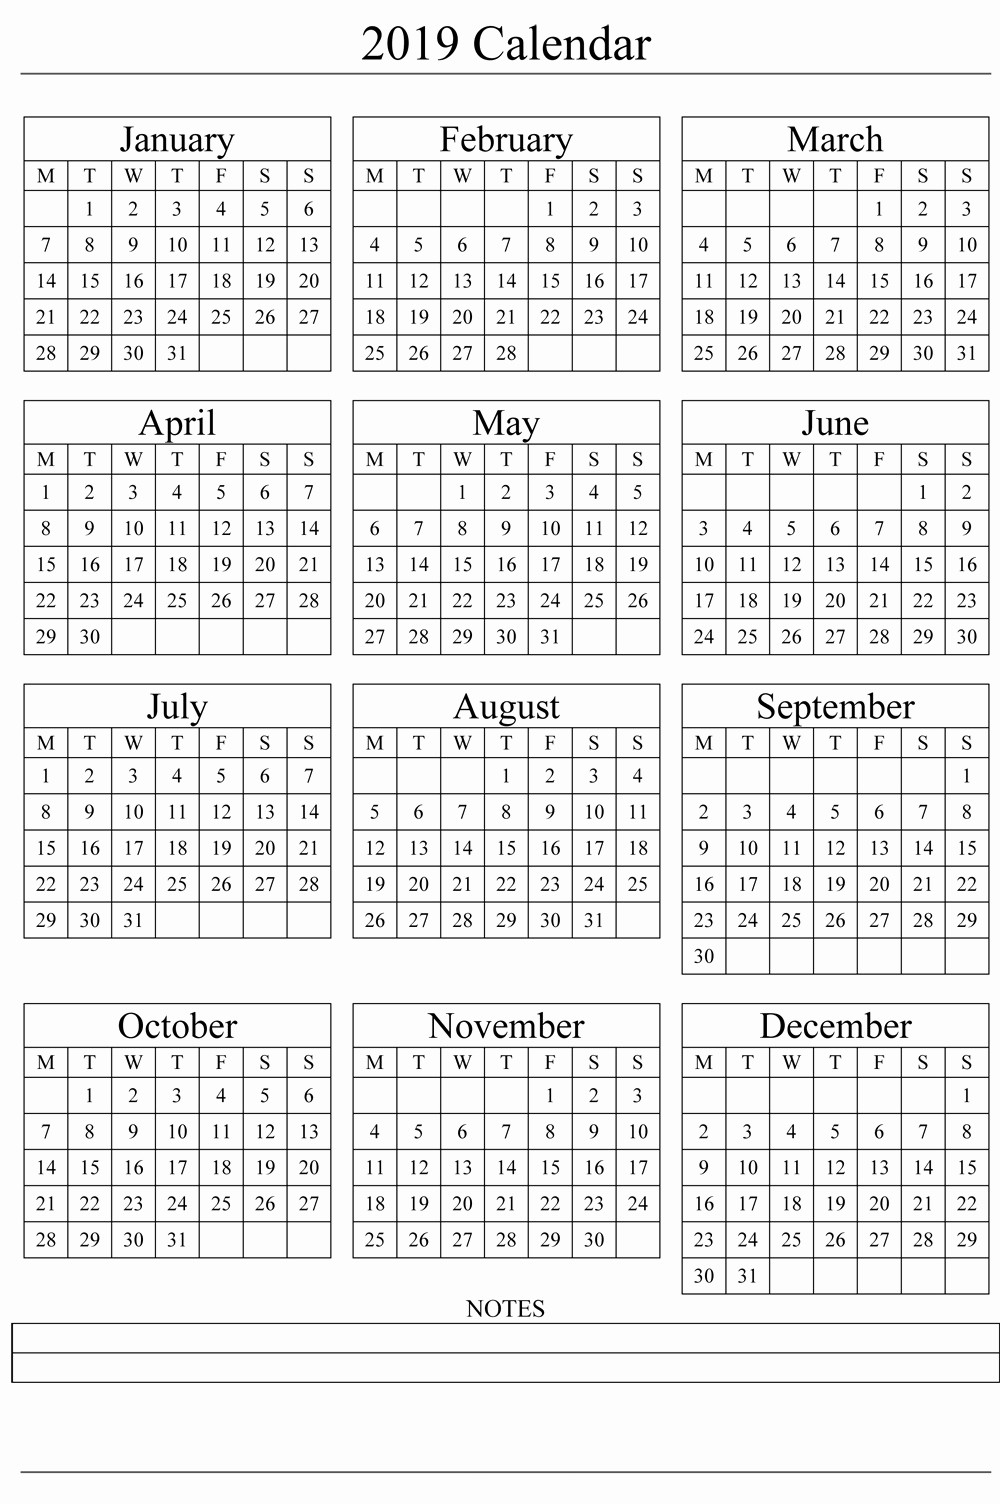 Free Printable Calendar Templates 2019 Luxury 2019 Printable Calendar Templates [free]